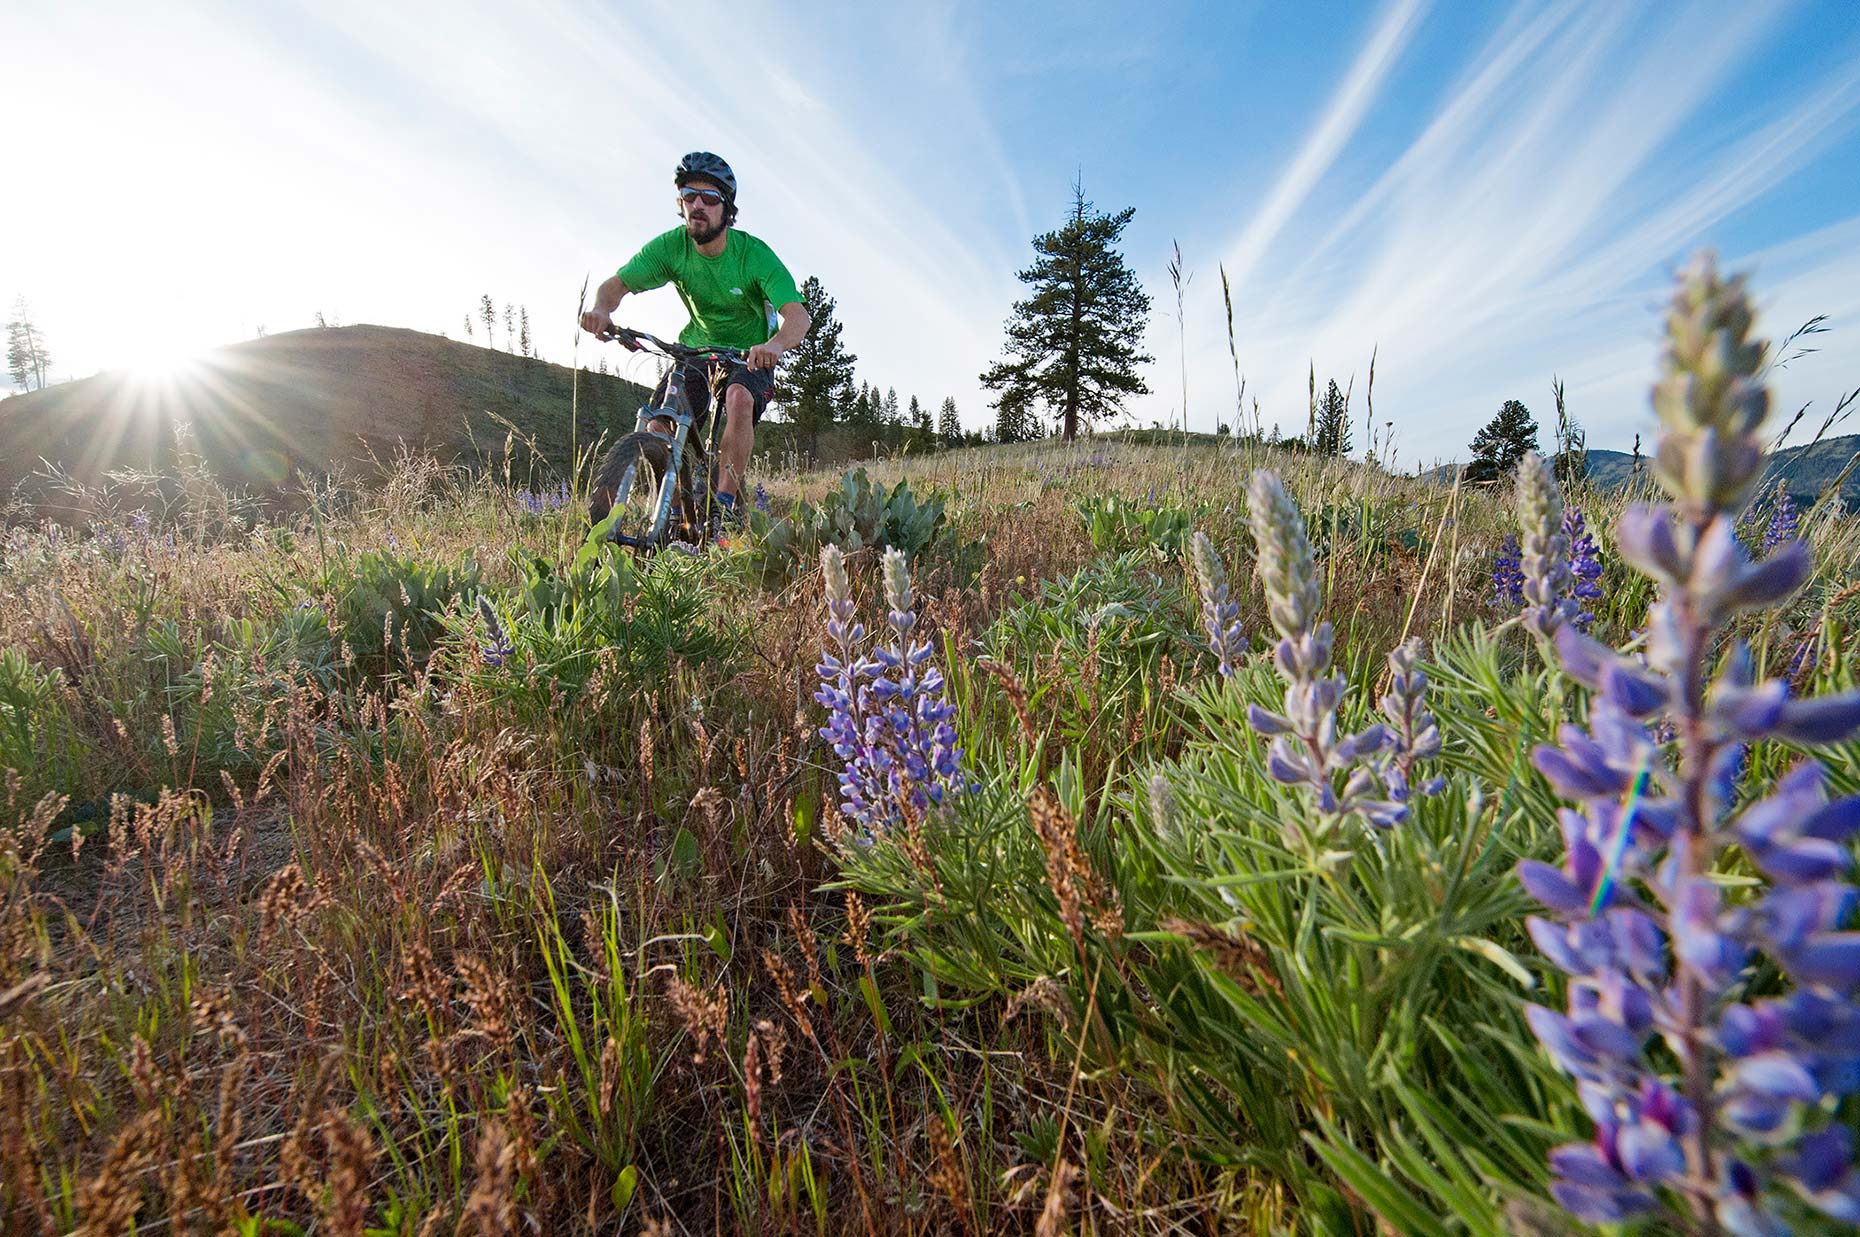 Ian-Coble-Mountain-Biking-Eastern-Washington-REI